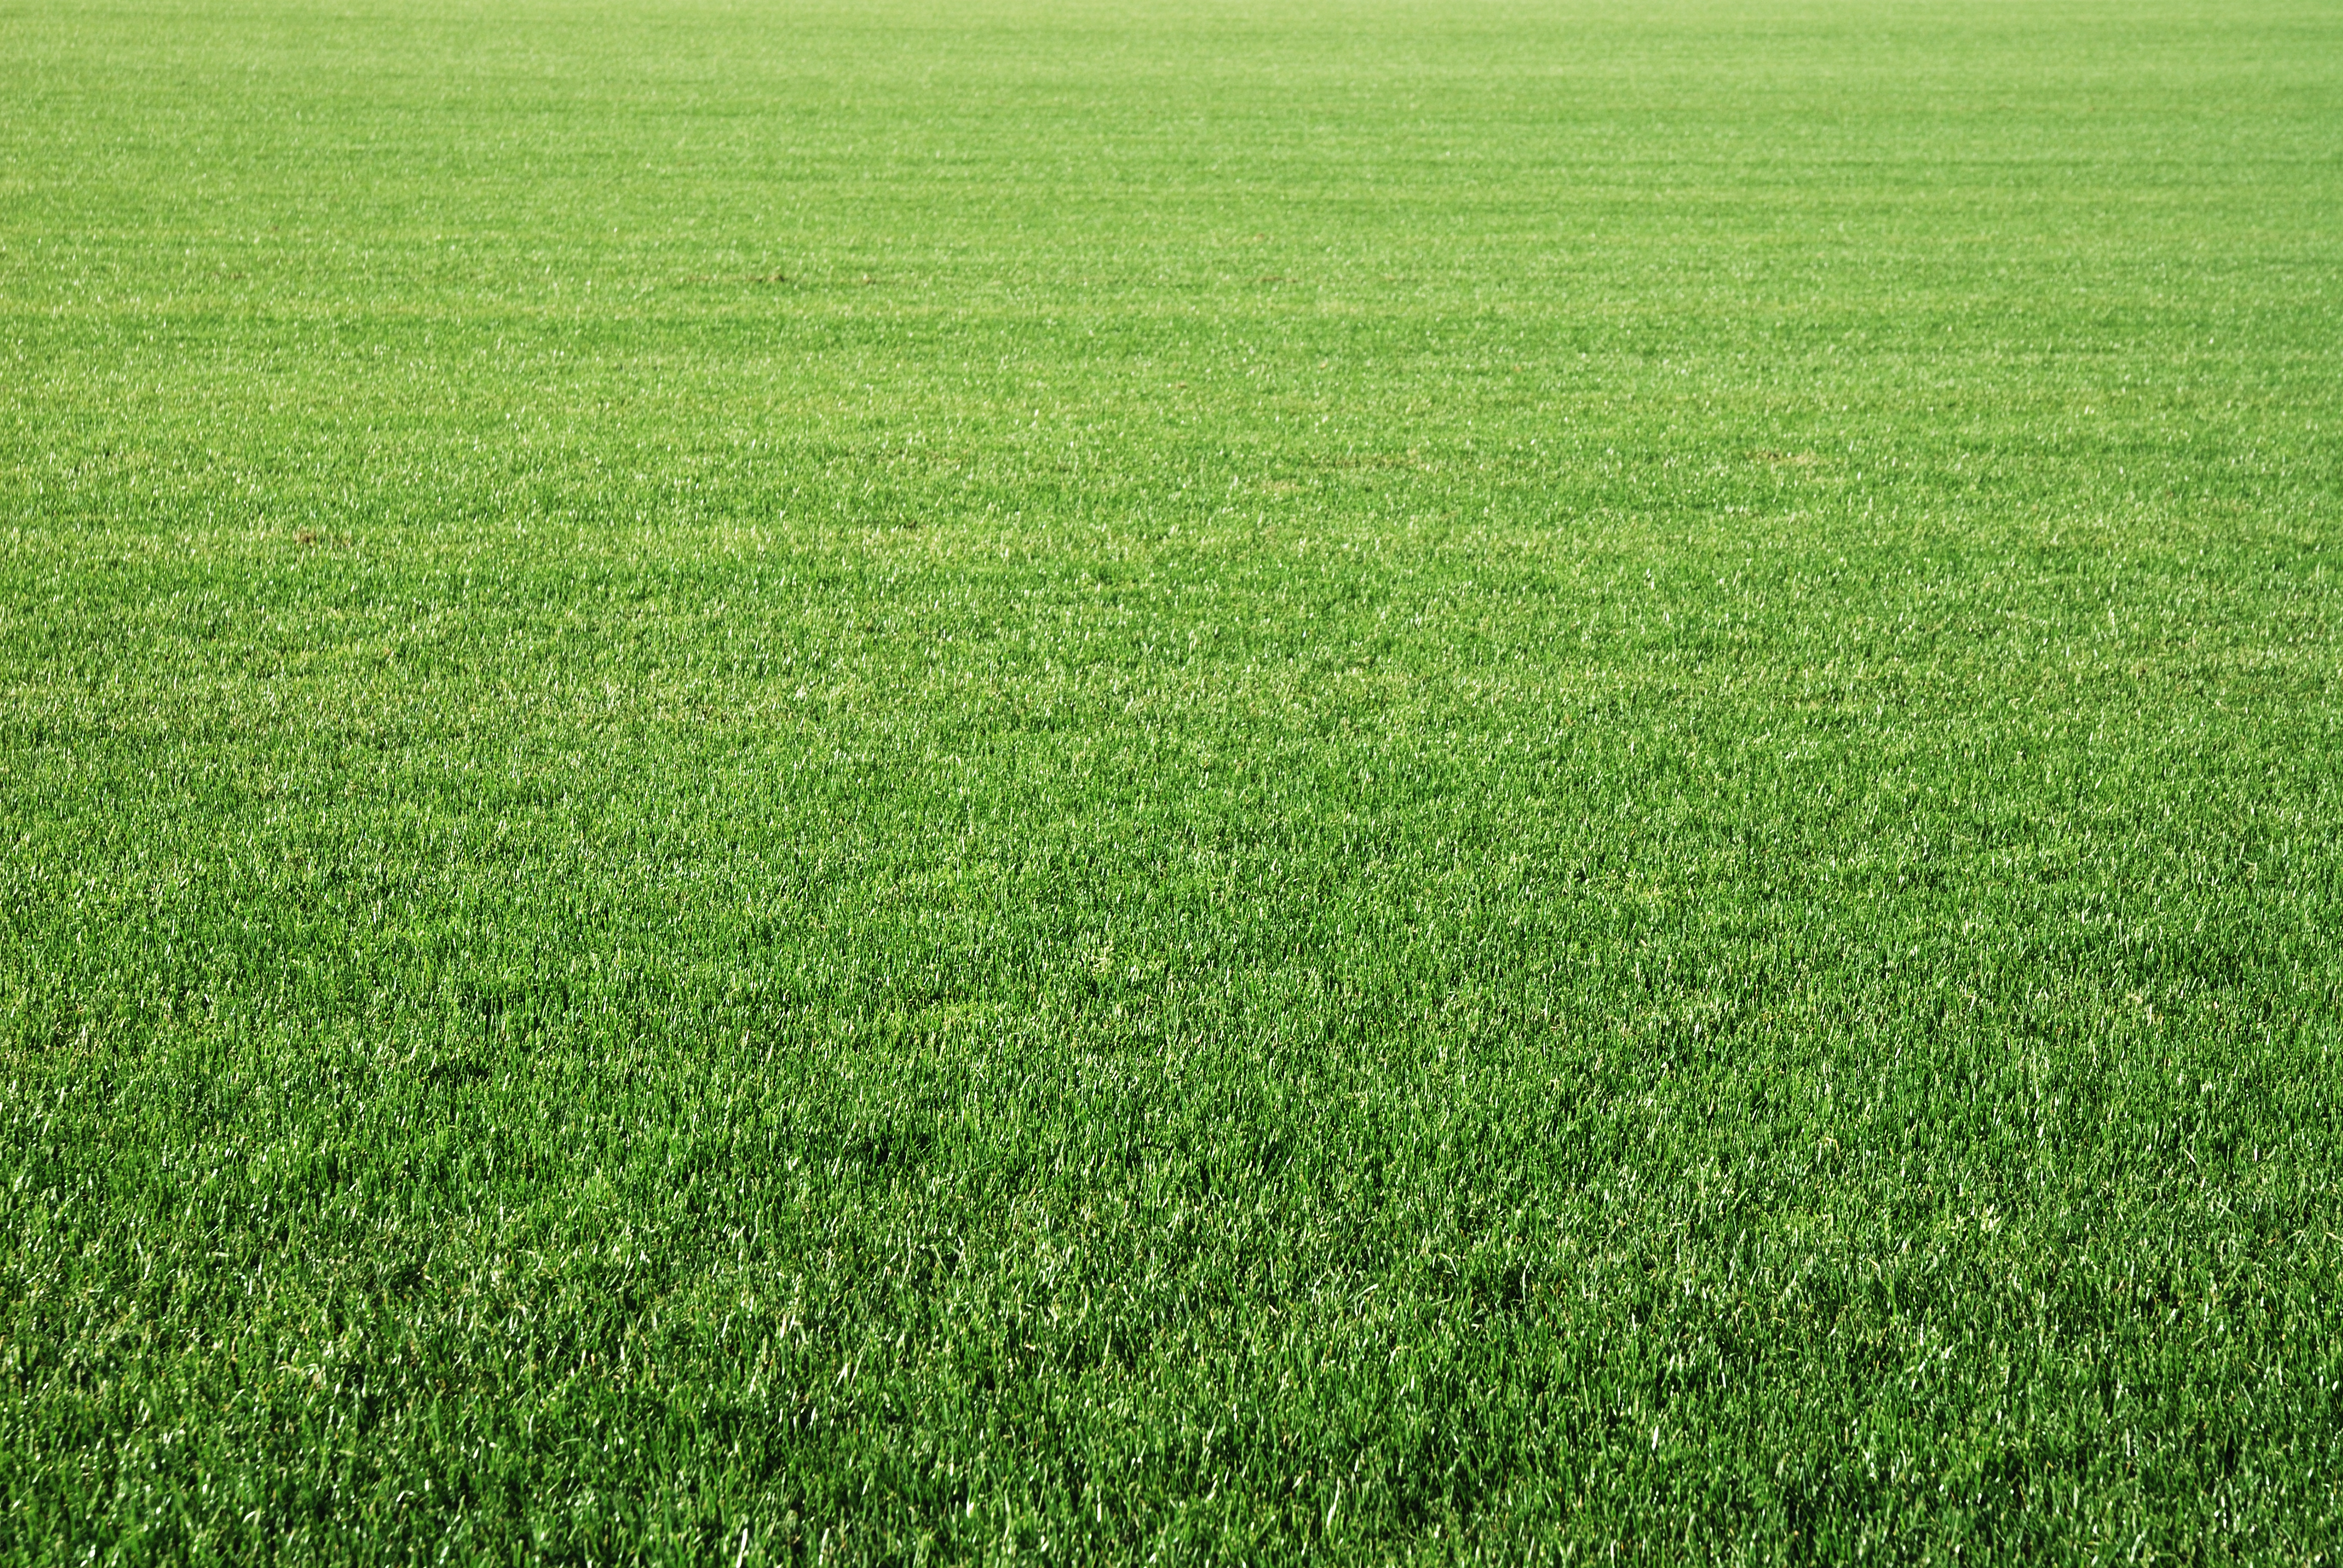 How Long After Grass Starts Growing Can You Cut It? | Home